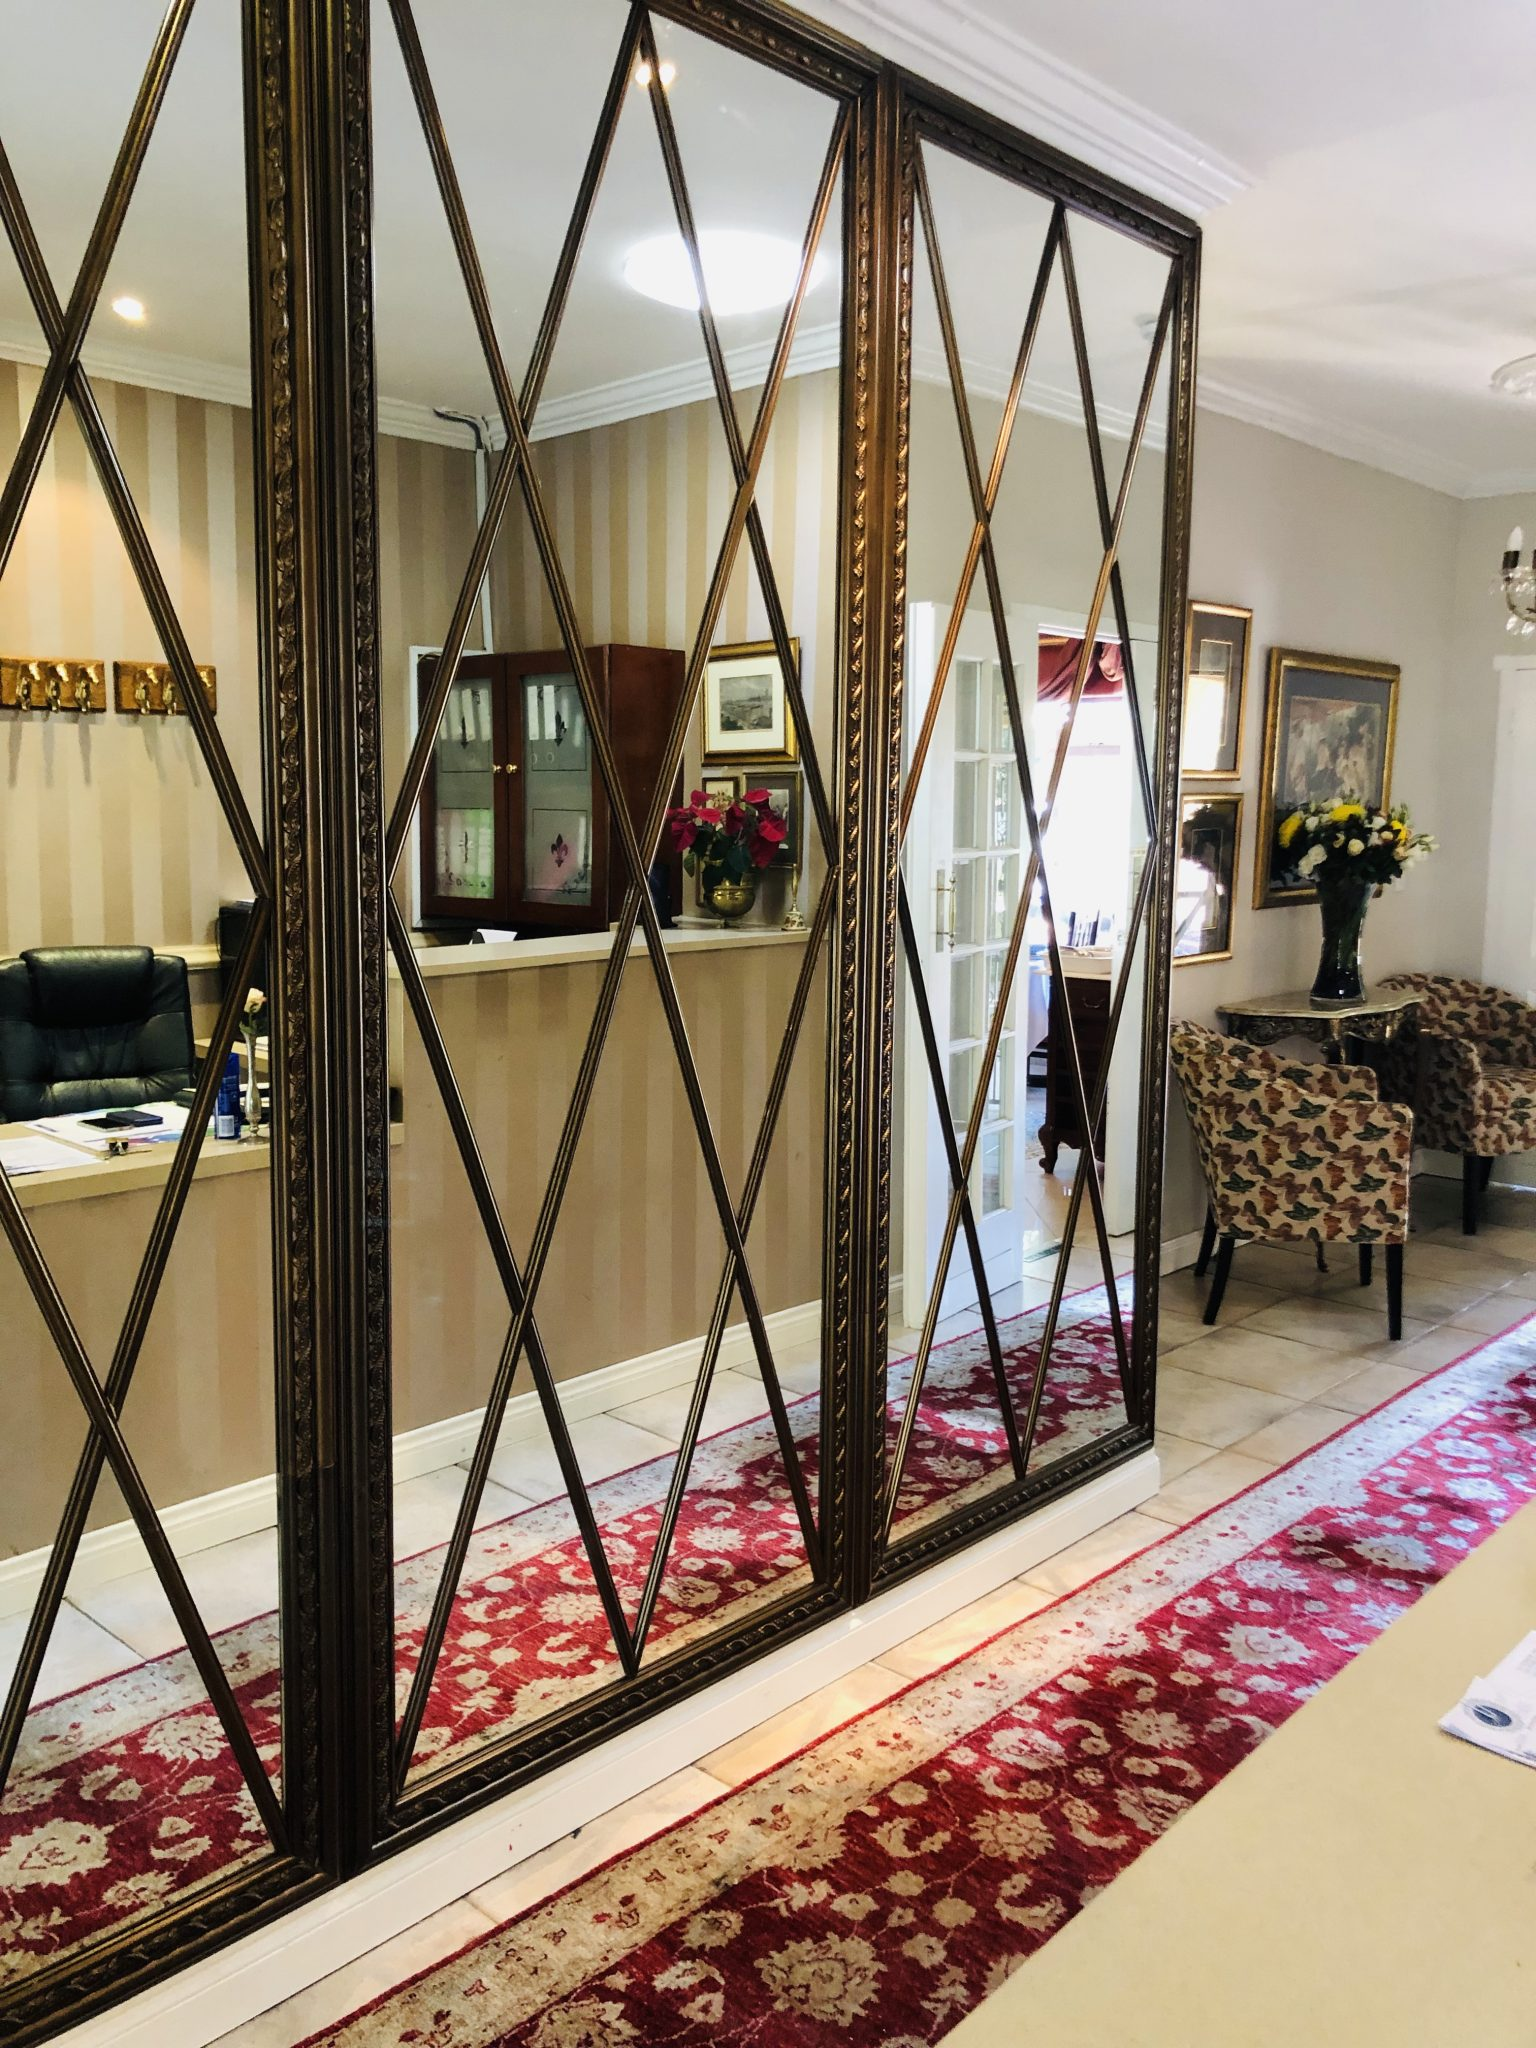 Staying at Hudson's on 12th in Rivonia